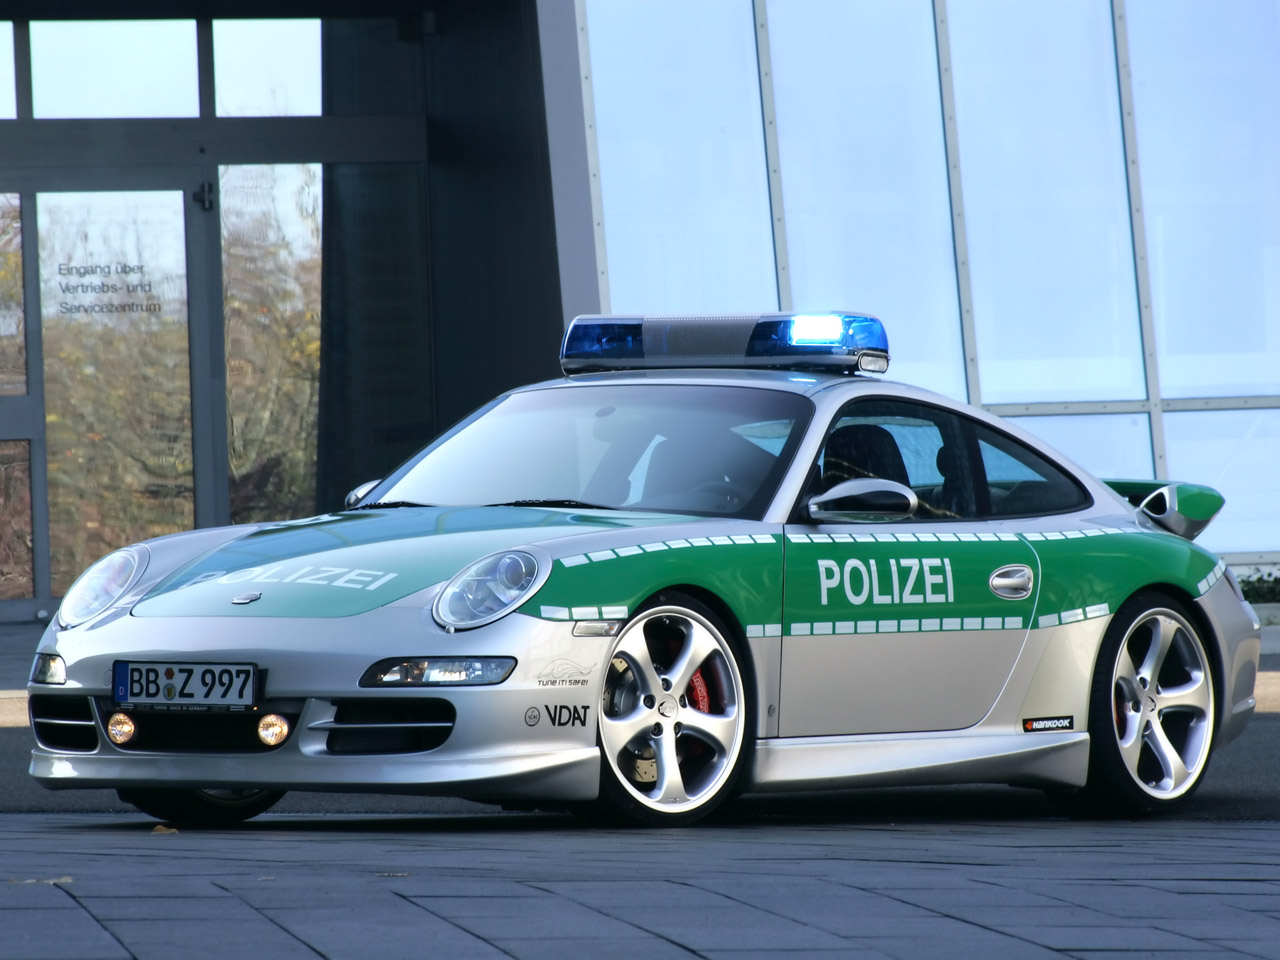 2005 TechArt 911 Carrera Police car porsche